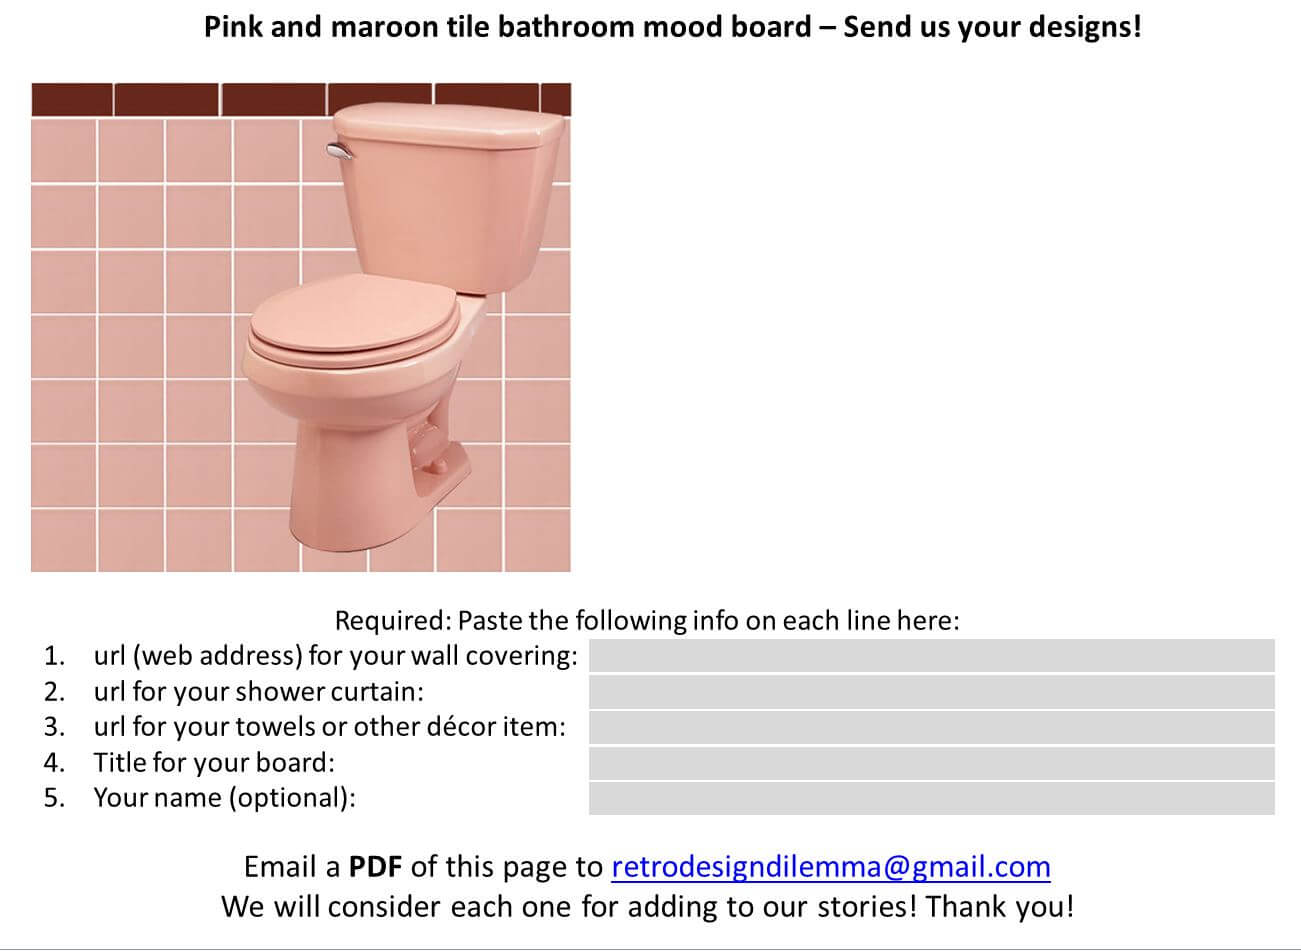 13 ideas to decorate a pink and blue tile bathroom - retro renovation